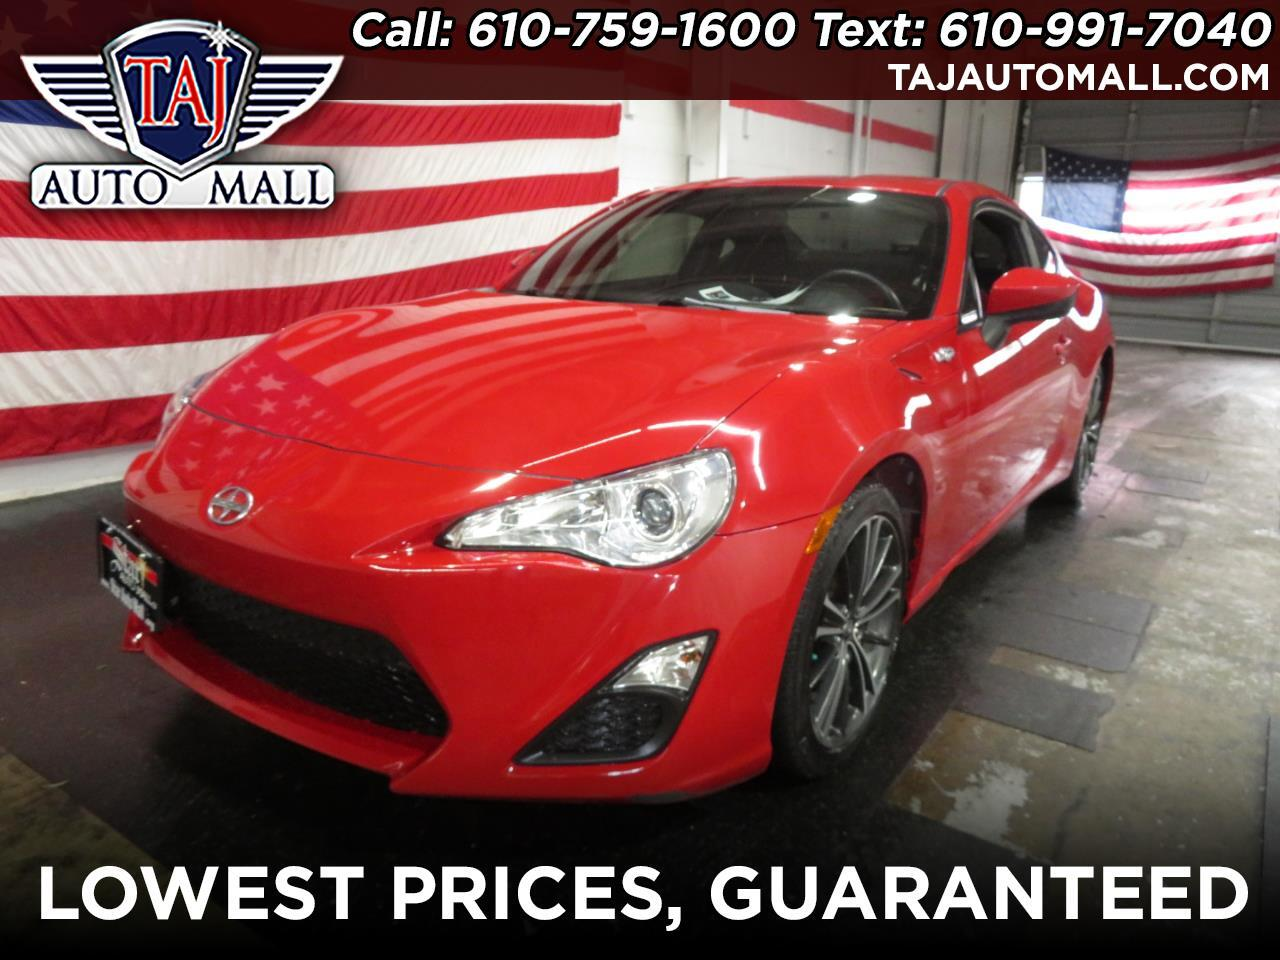 2014 Scion FR-S 2dr Cpe Auto (Natl)